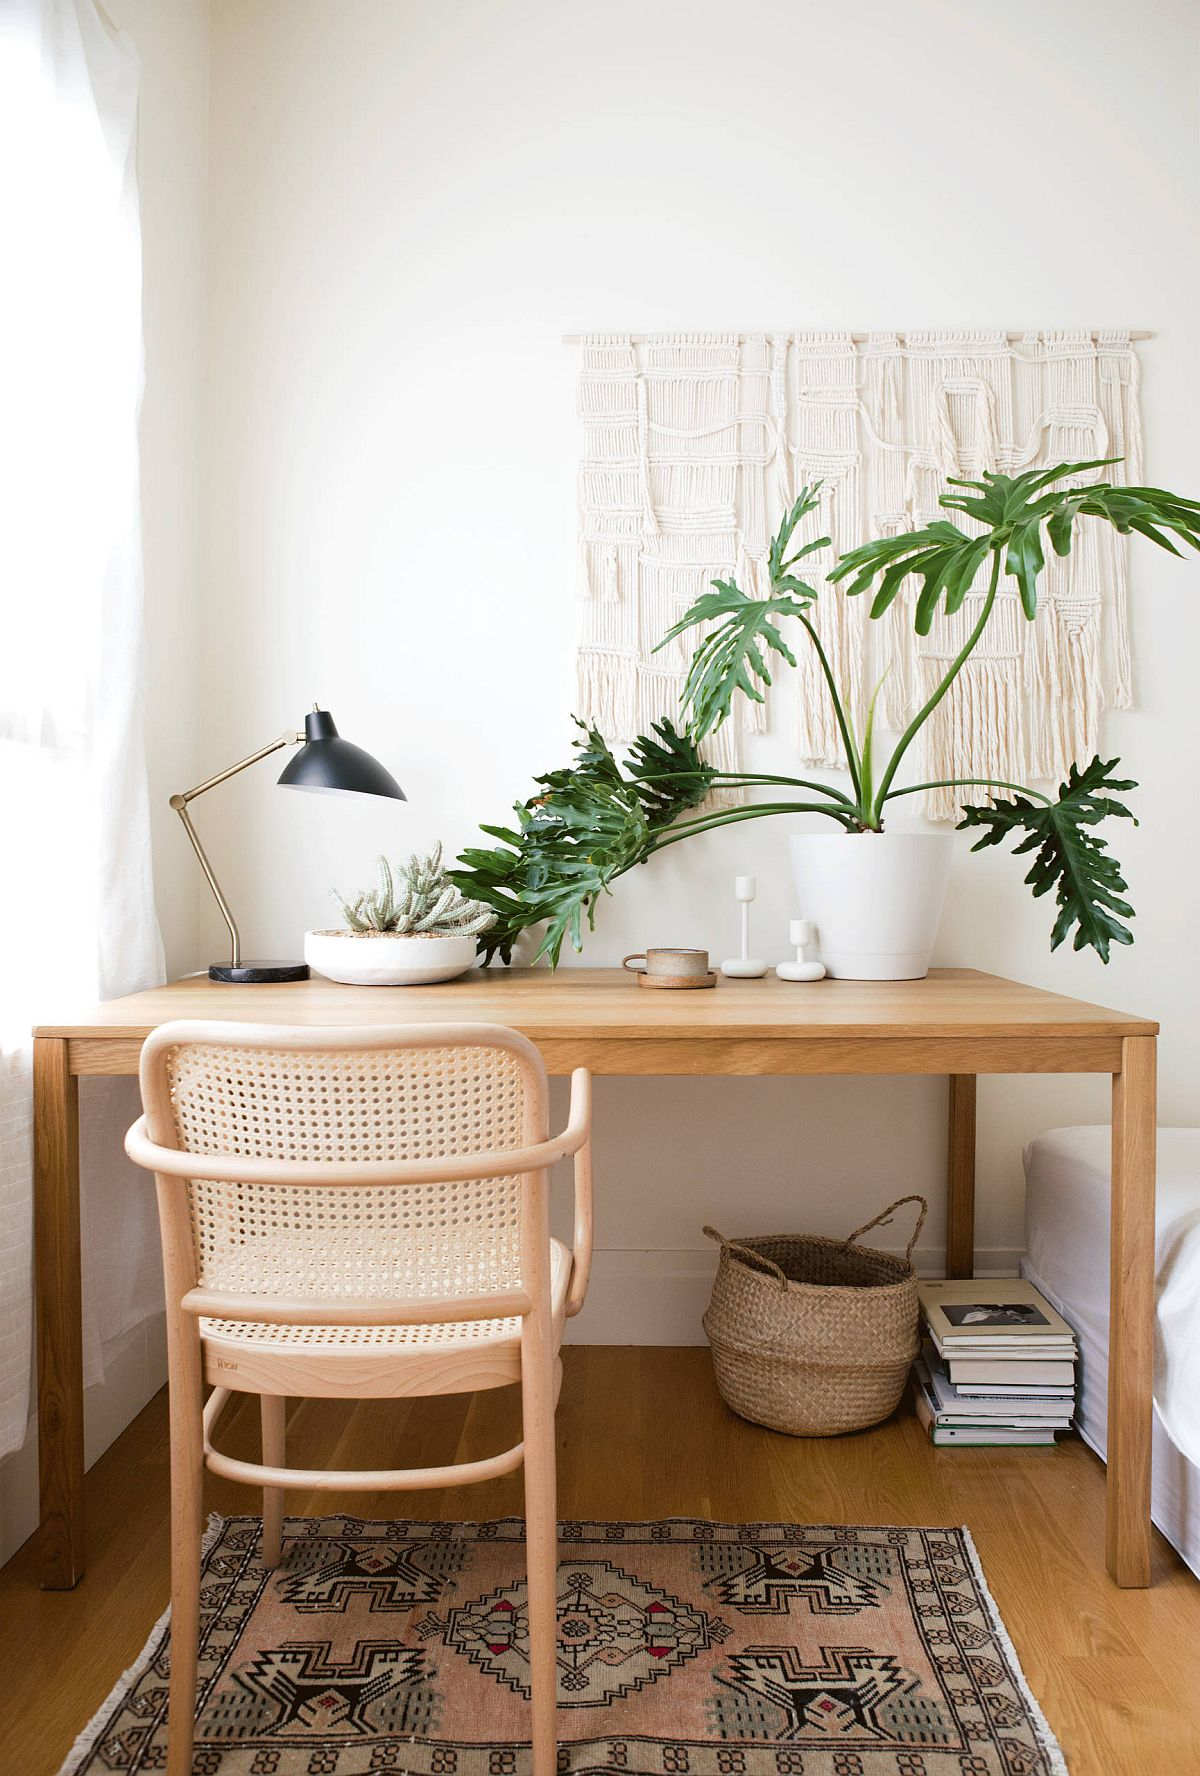 Scandinavian style home office in wood and white with a dash of green brought in by indoor plants